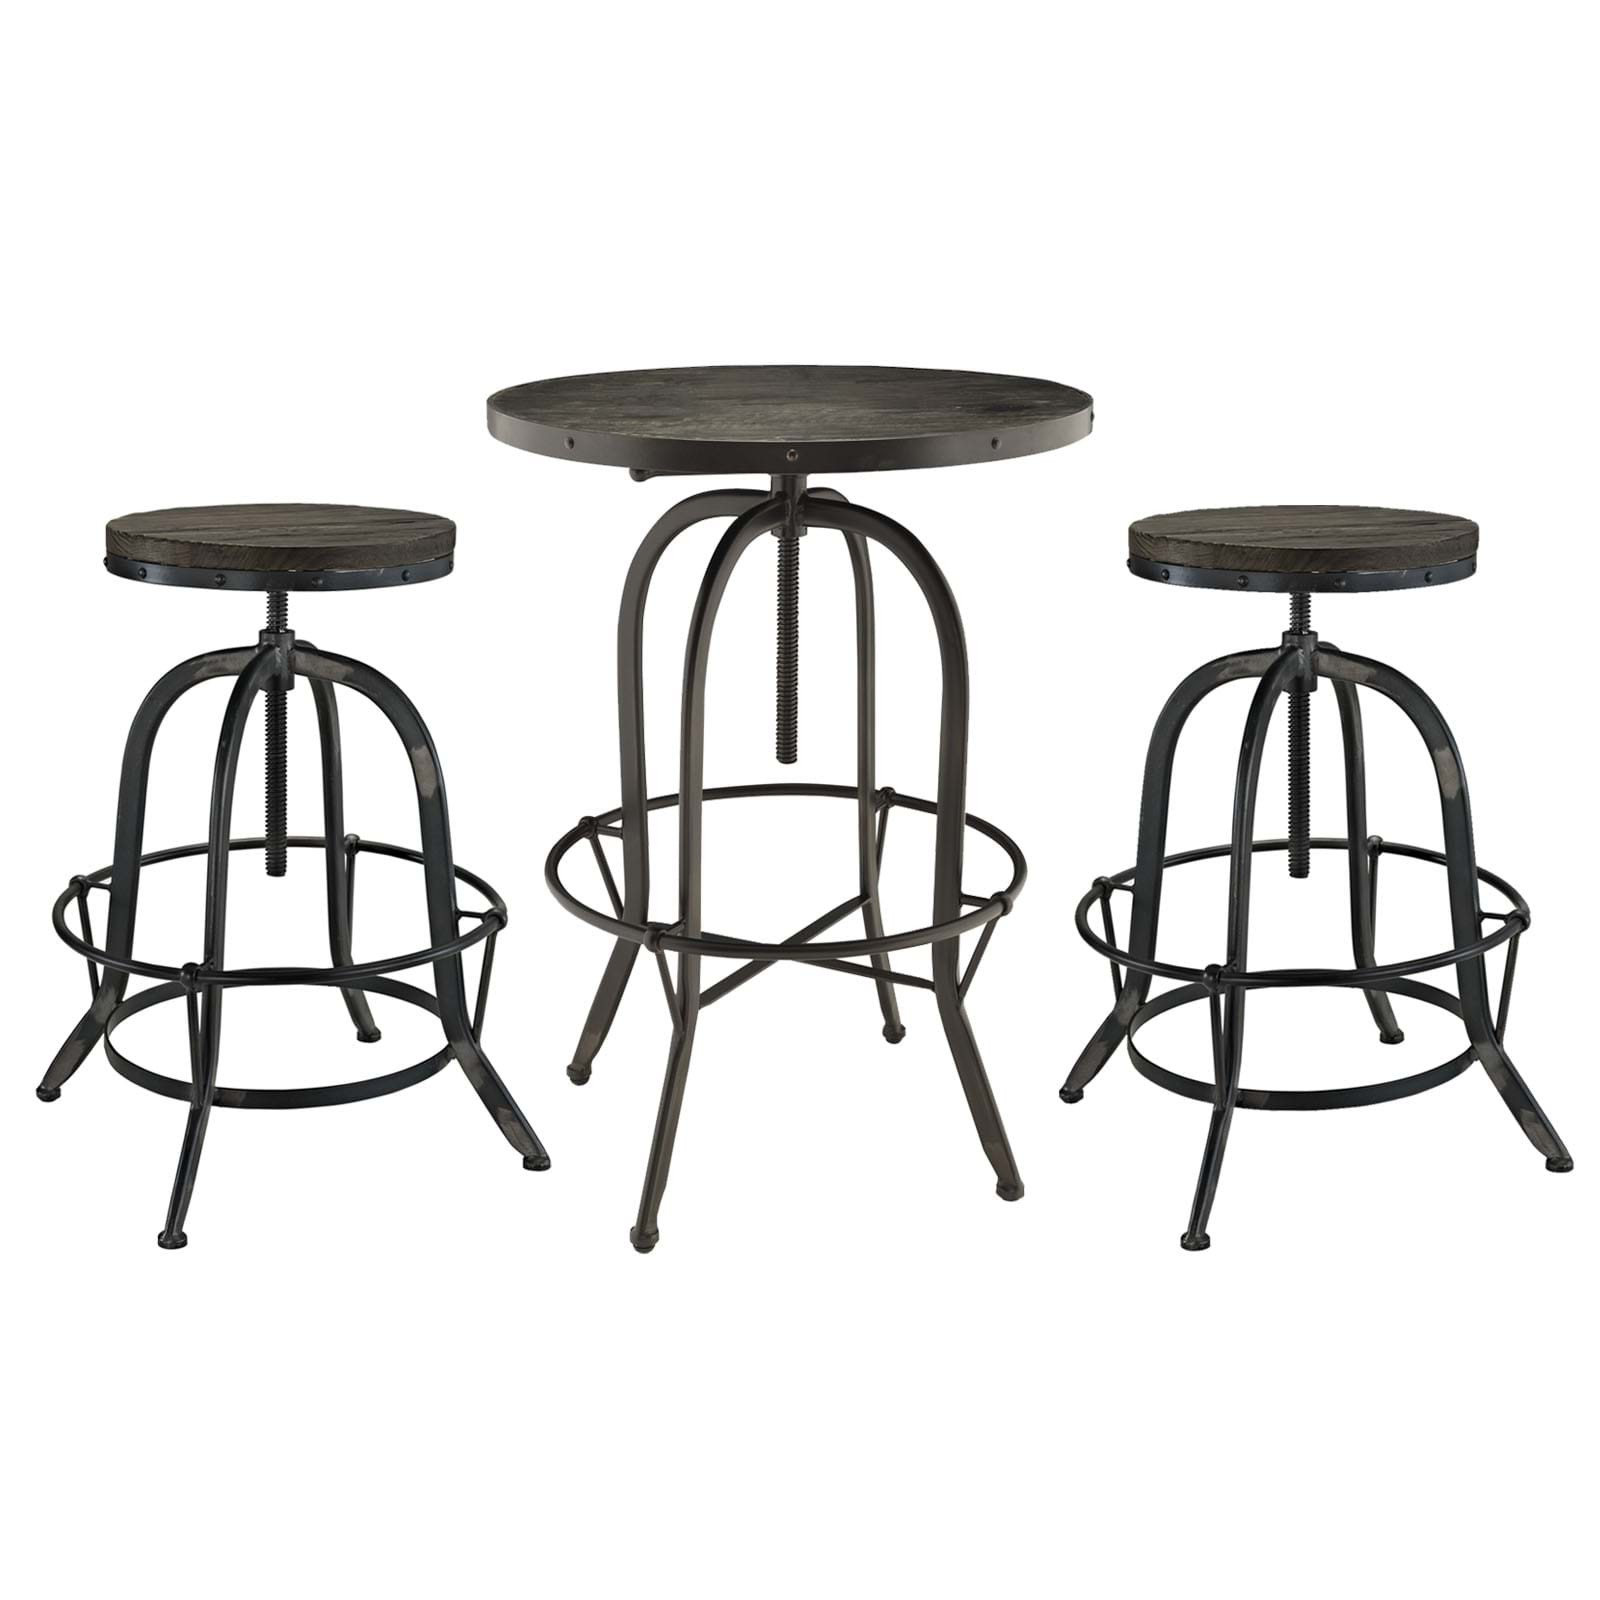 Gather 3 Piece Dining Set